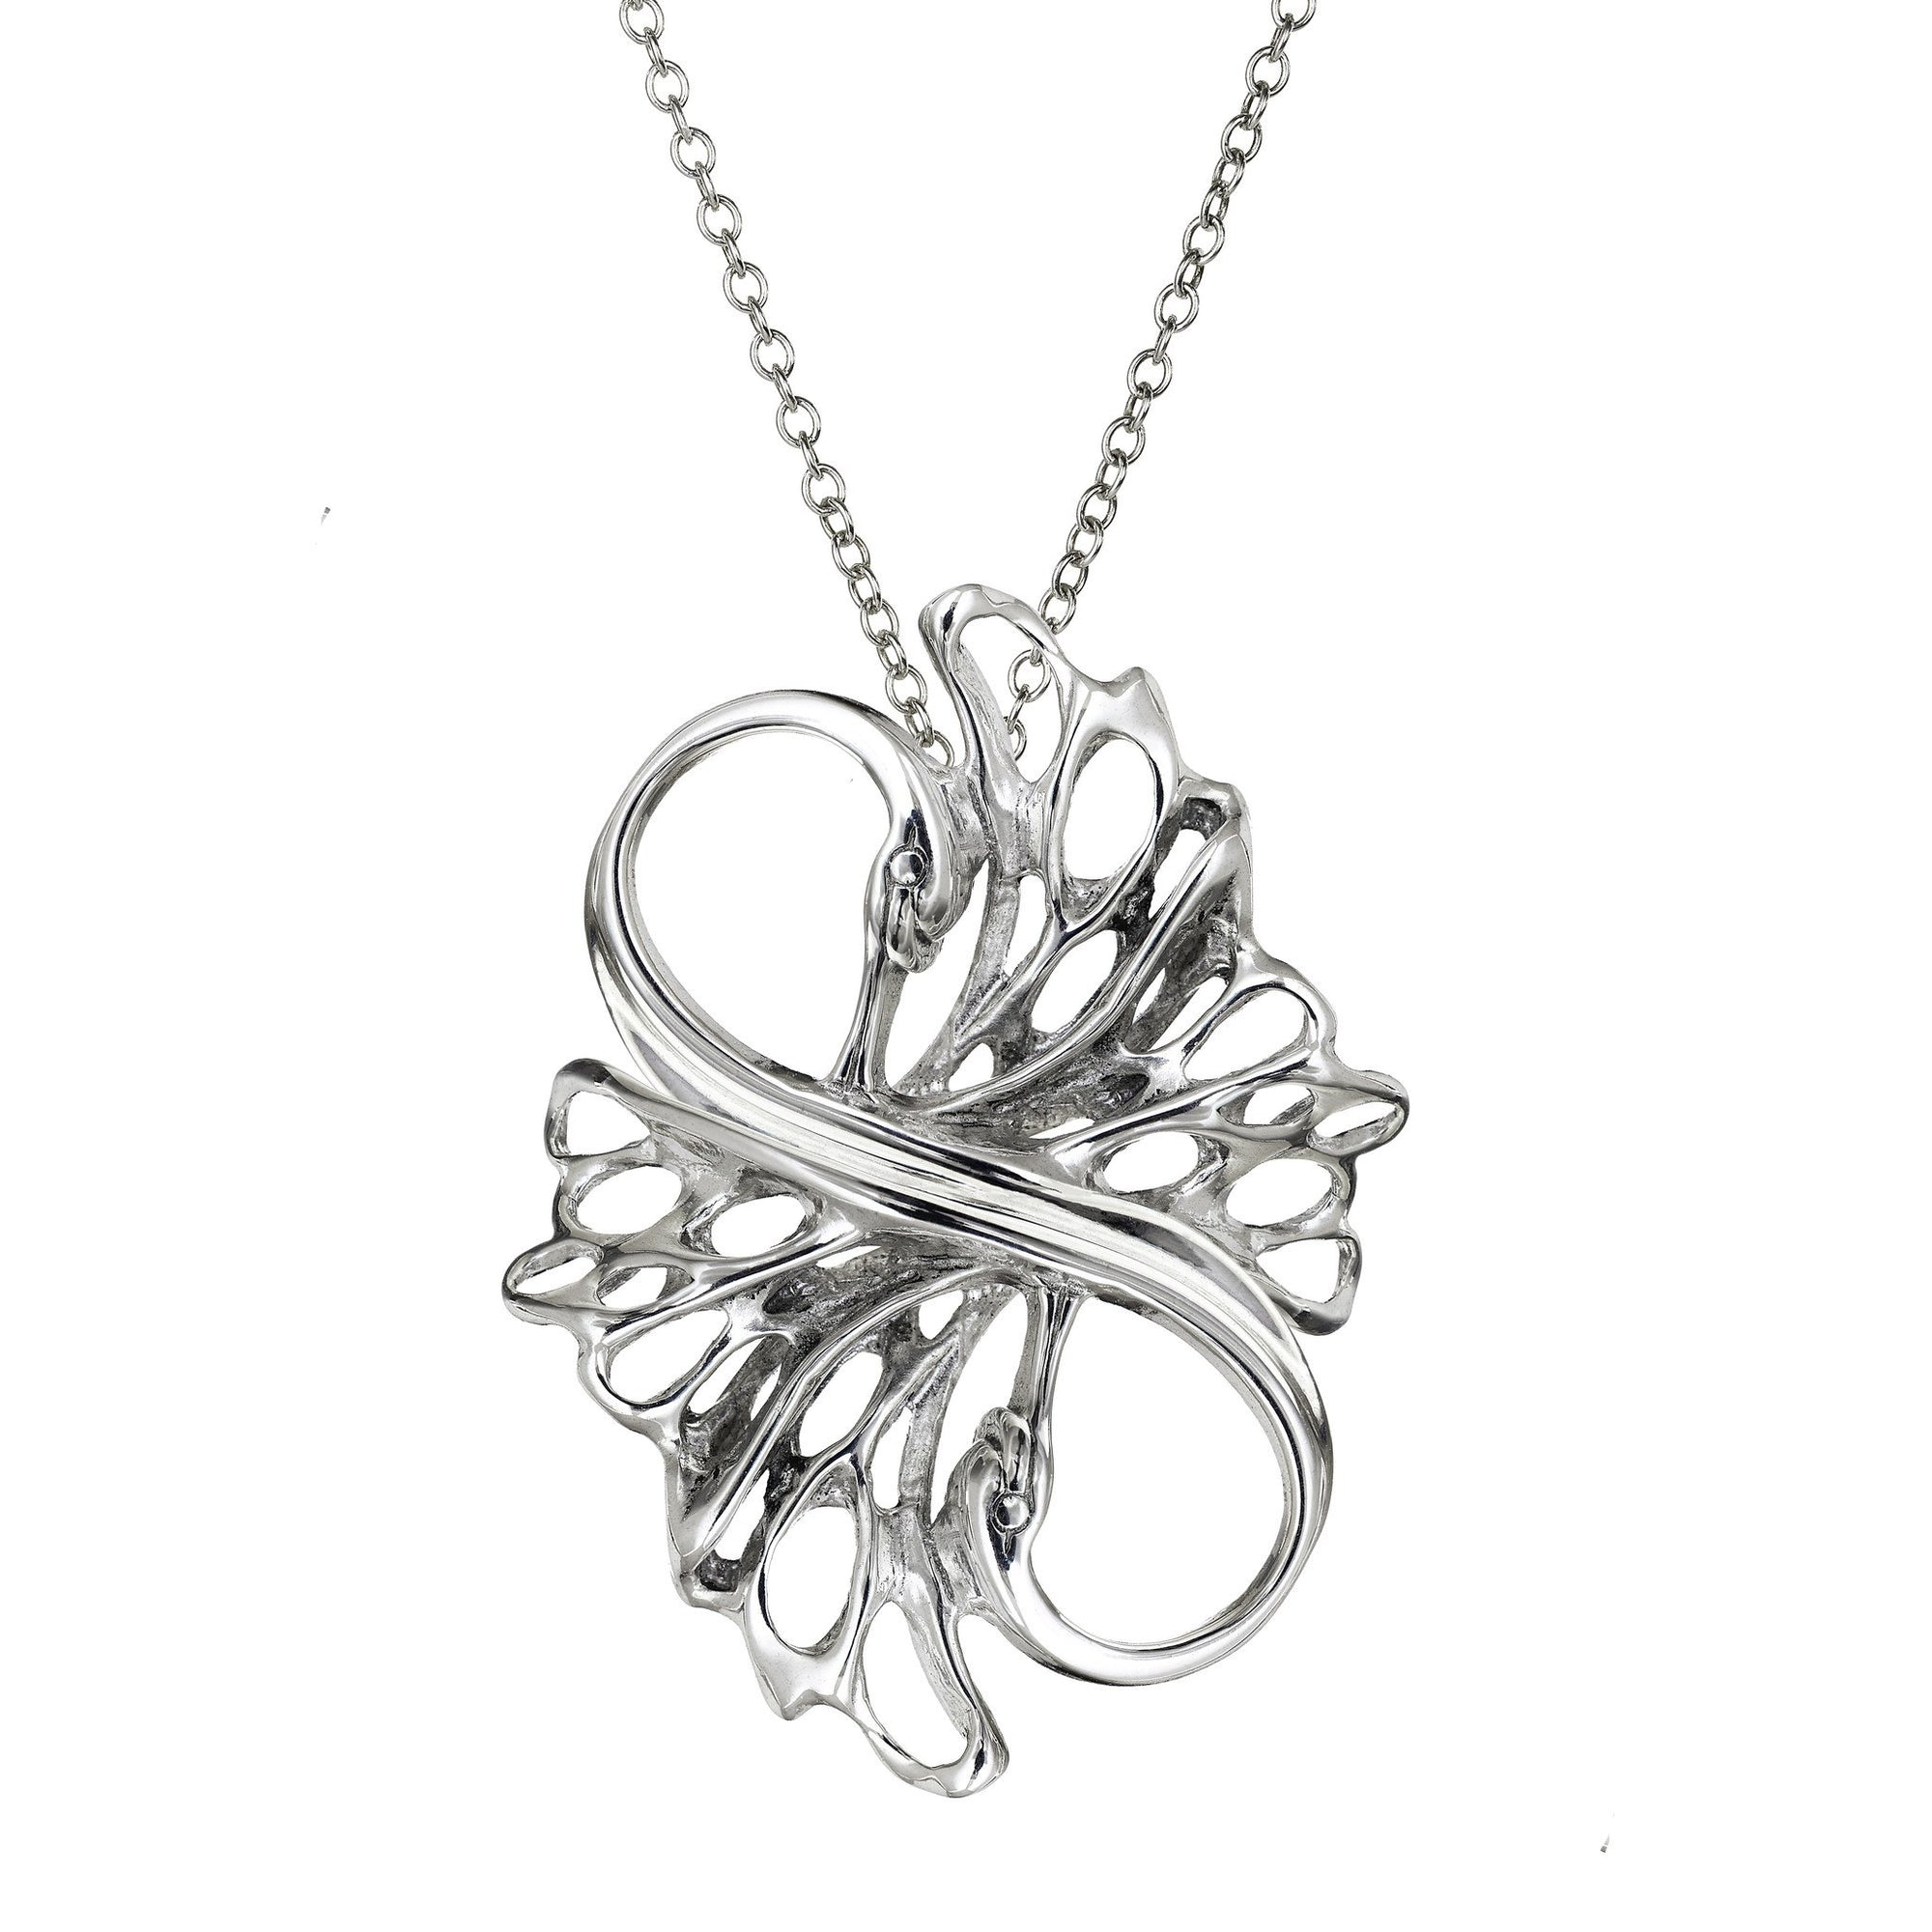 Sterling Silver Irish Jewellery, a Swan Pendant that can be purchased as a gift set to show your love!